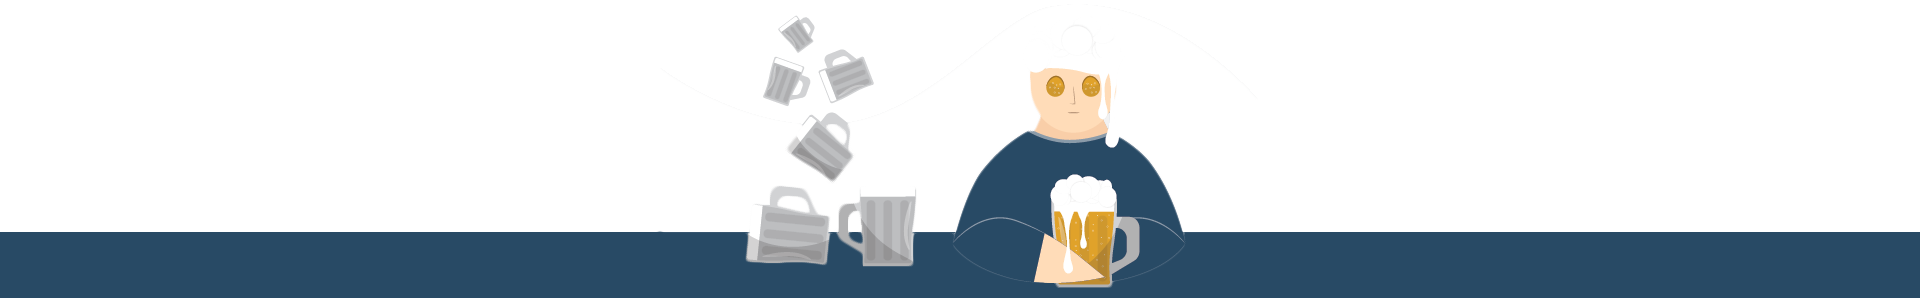 Illustration of a Man at the Bar and Drinking a Lot of Beer